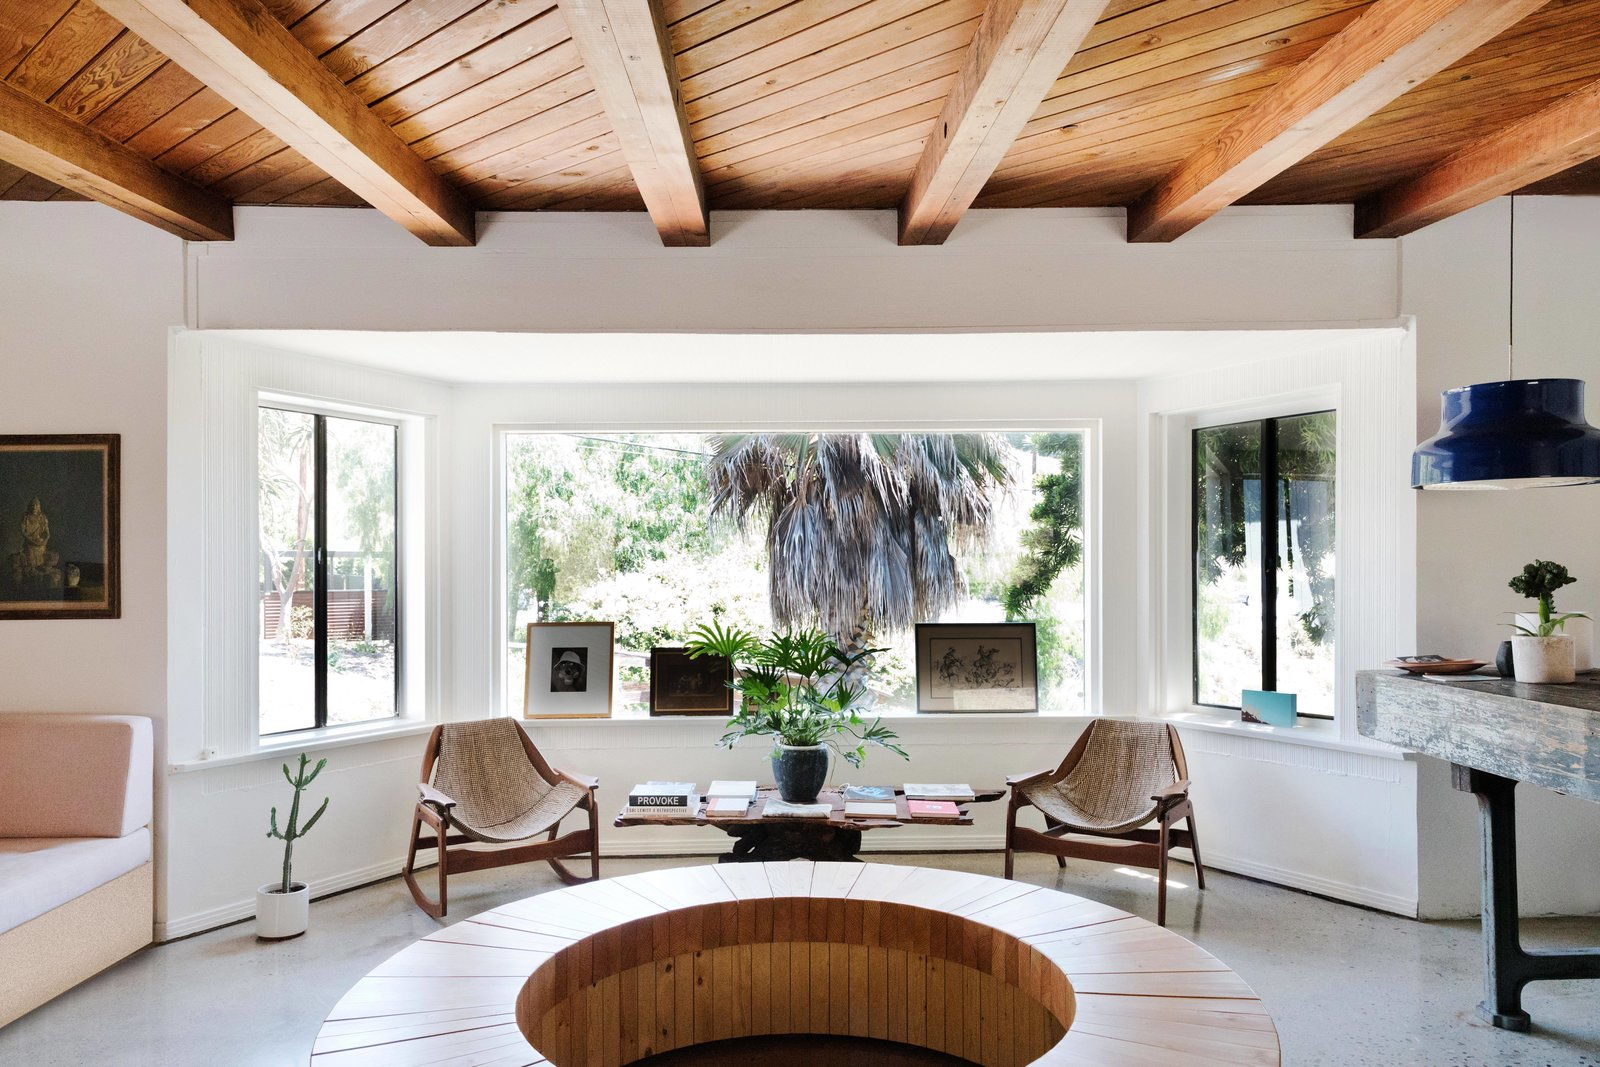 Living Room, Sofa, Pendant Lighting, Chair, Coffee Tables, and Terrazzo Floor Check-in features design-conscious updates, such as a Jerry Johnson sling rocker and chair and a wood bar sofa from Early Work.  Best Photos from Do Malibu in Style With the Native Hotel, a Rejuvenated Hollywood Favorite